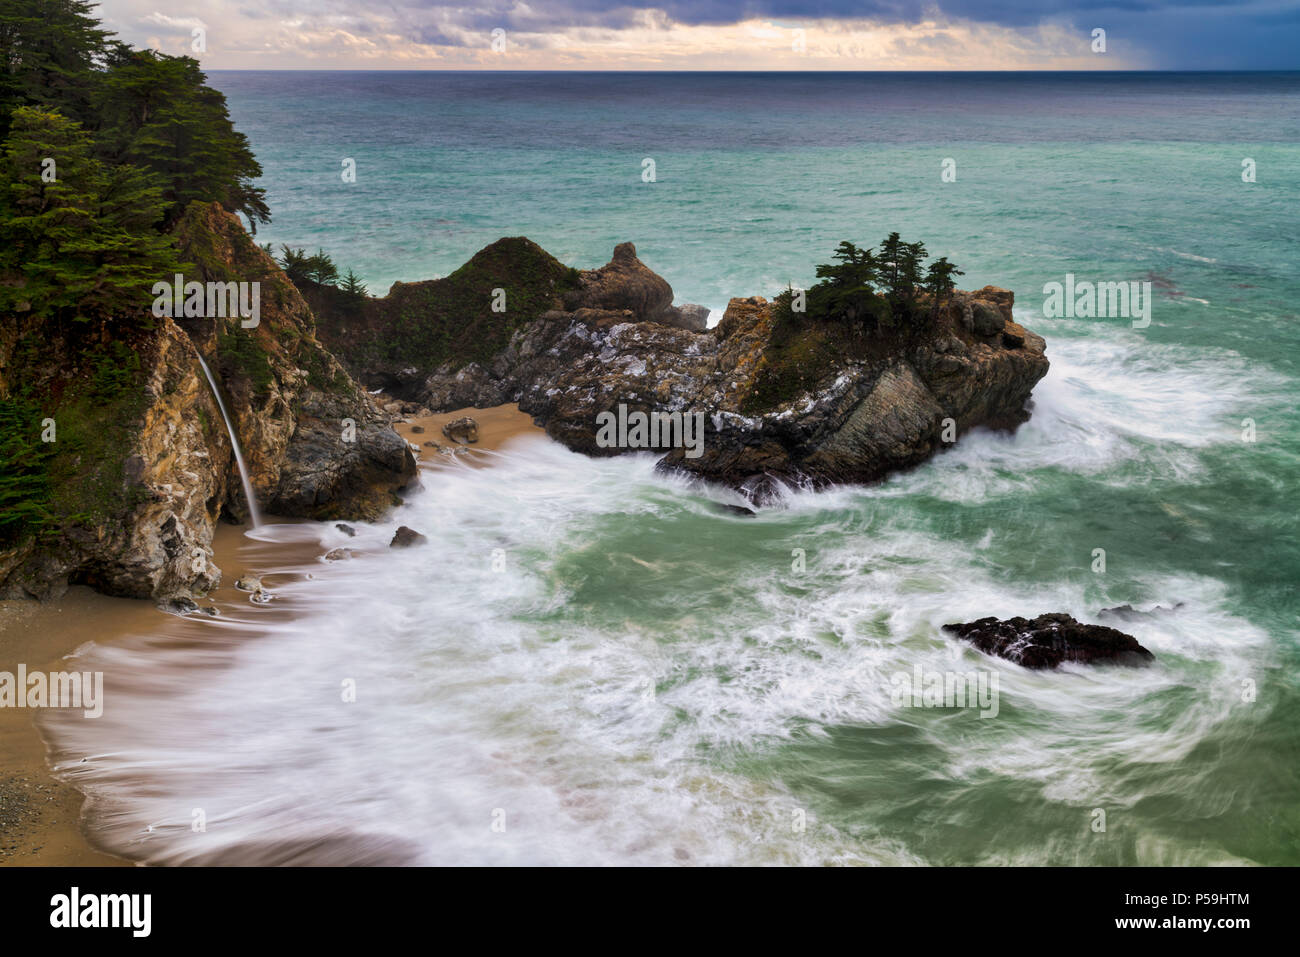 McWay Falls - Stock Image